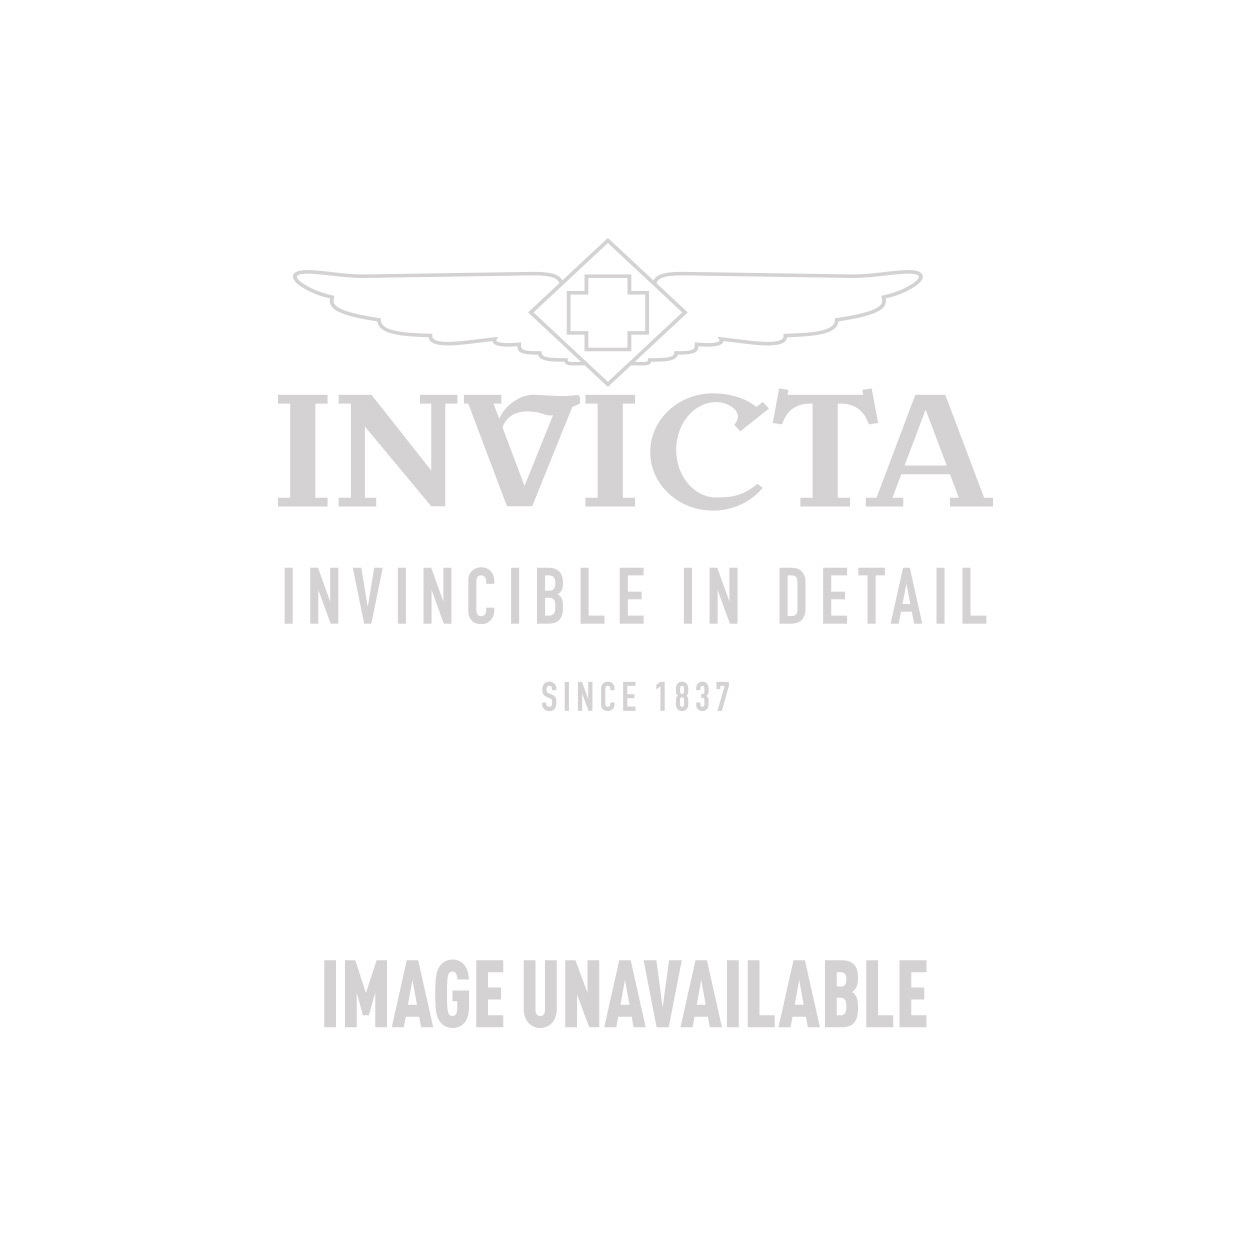 Invicta S1 Rally Automatic Watch - Rose Gold case with Brown tone Silicone band - Model 12791